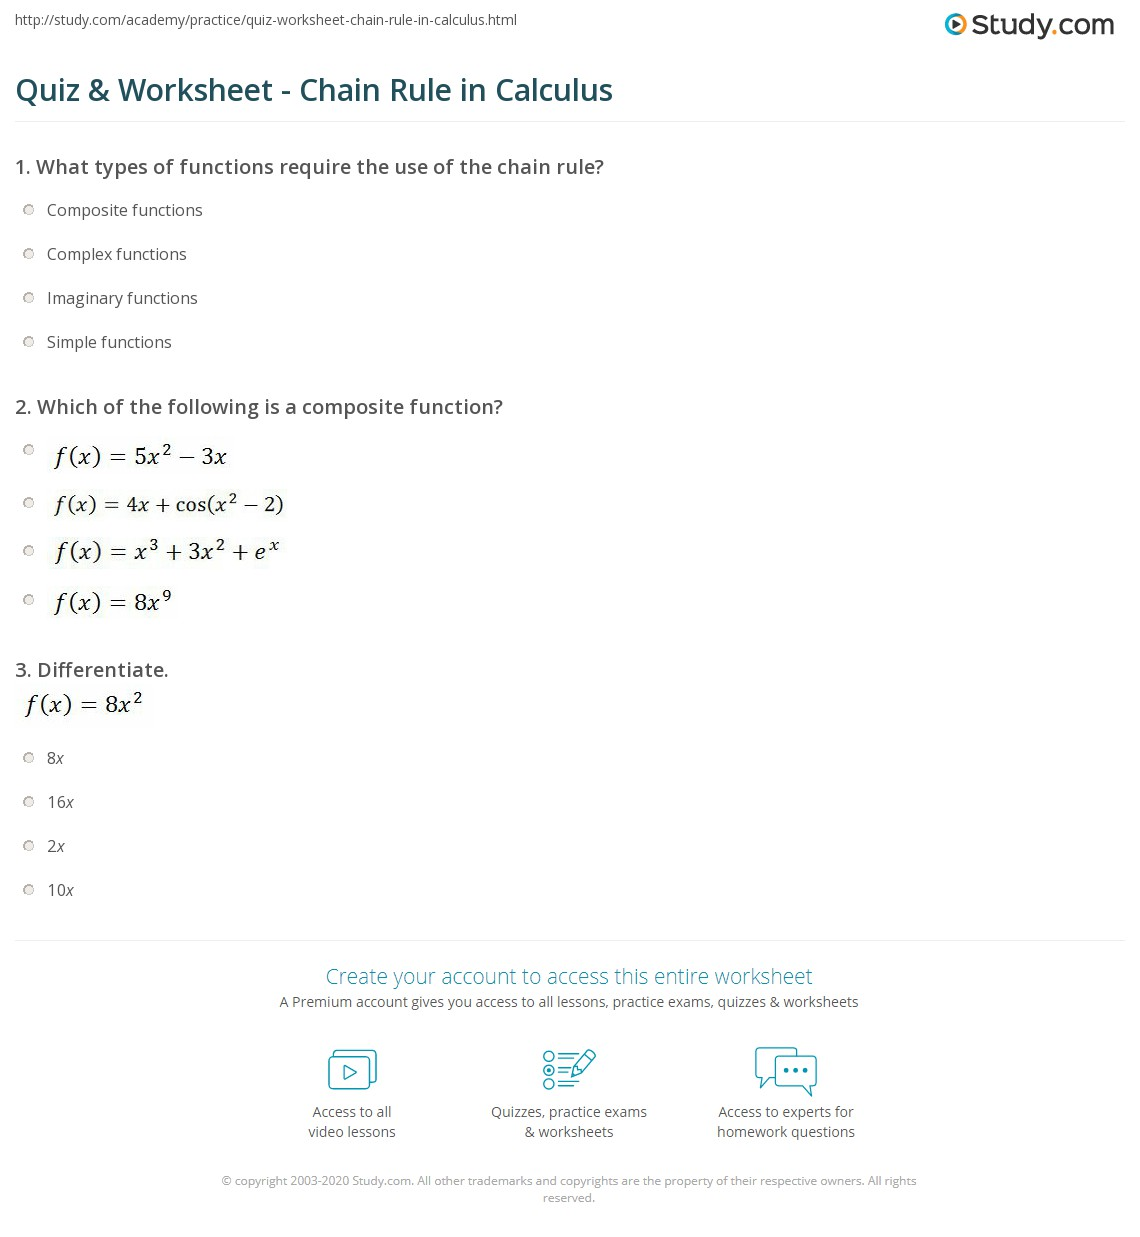 Quiz & Worksheet - Chain Rule in Calculus | Study.com